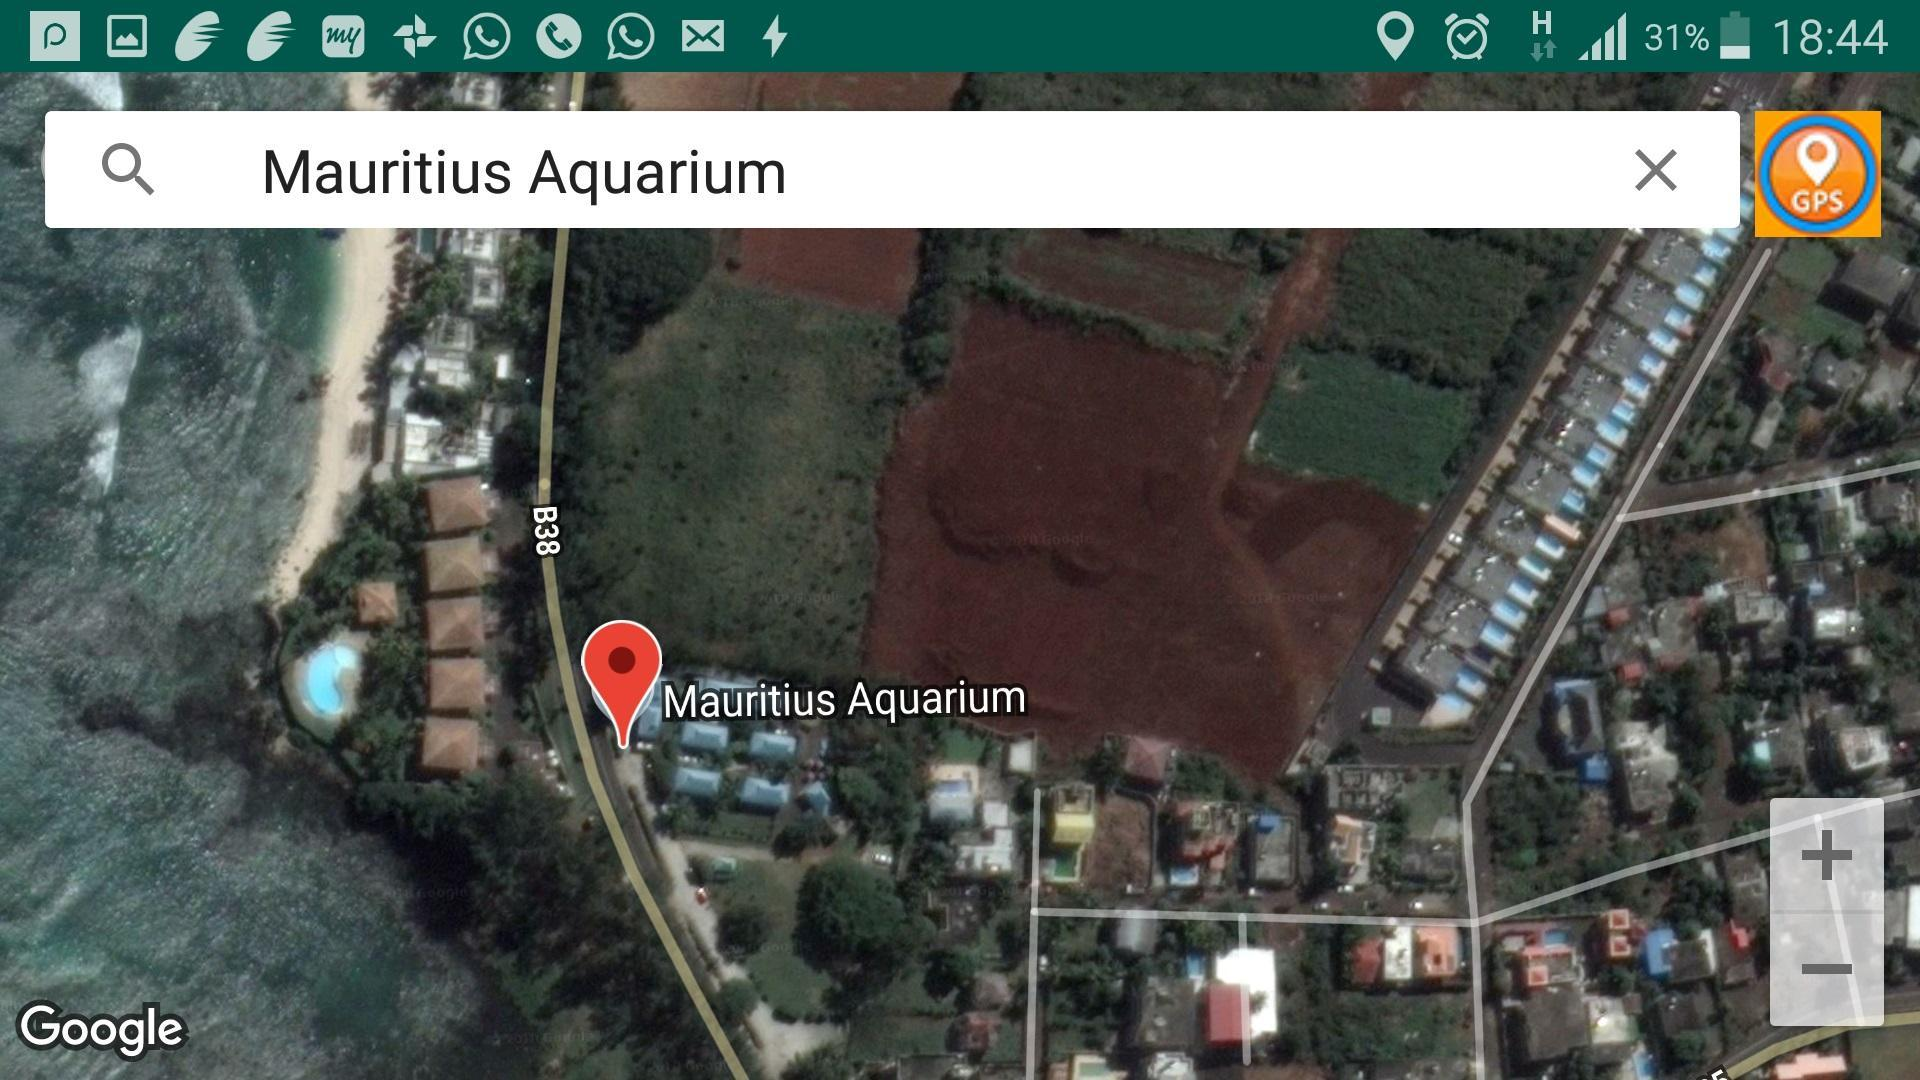 Location Satellite Maps for Android - APK Download on android charger, android home, android bluetooth, android movie, android ipod, android green, android tv, android email, android mobile, android samsung, android computer, android security, android wifi, android virus, android lightning, android 3g, android commercial,